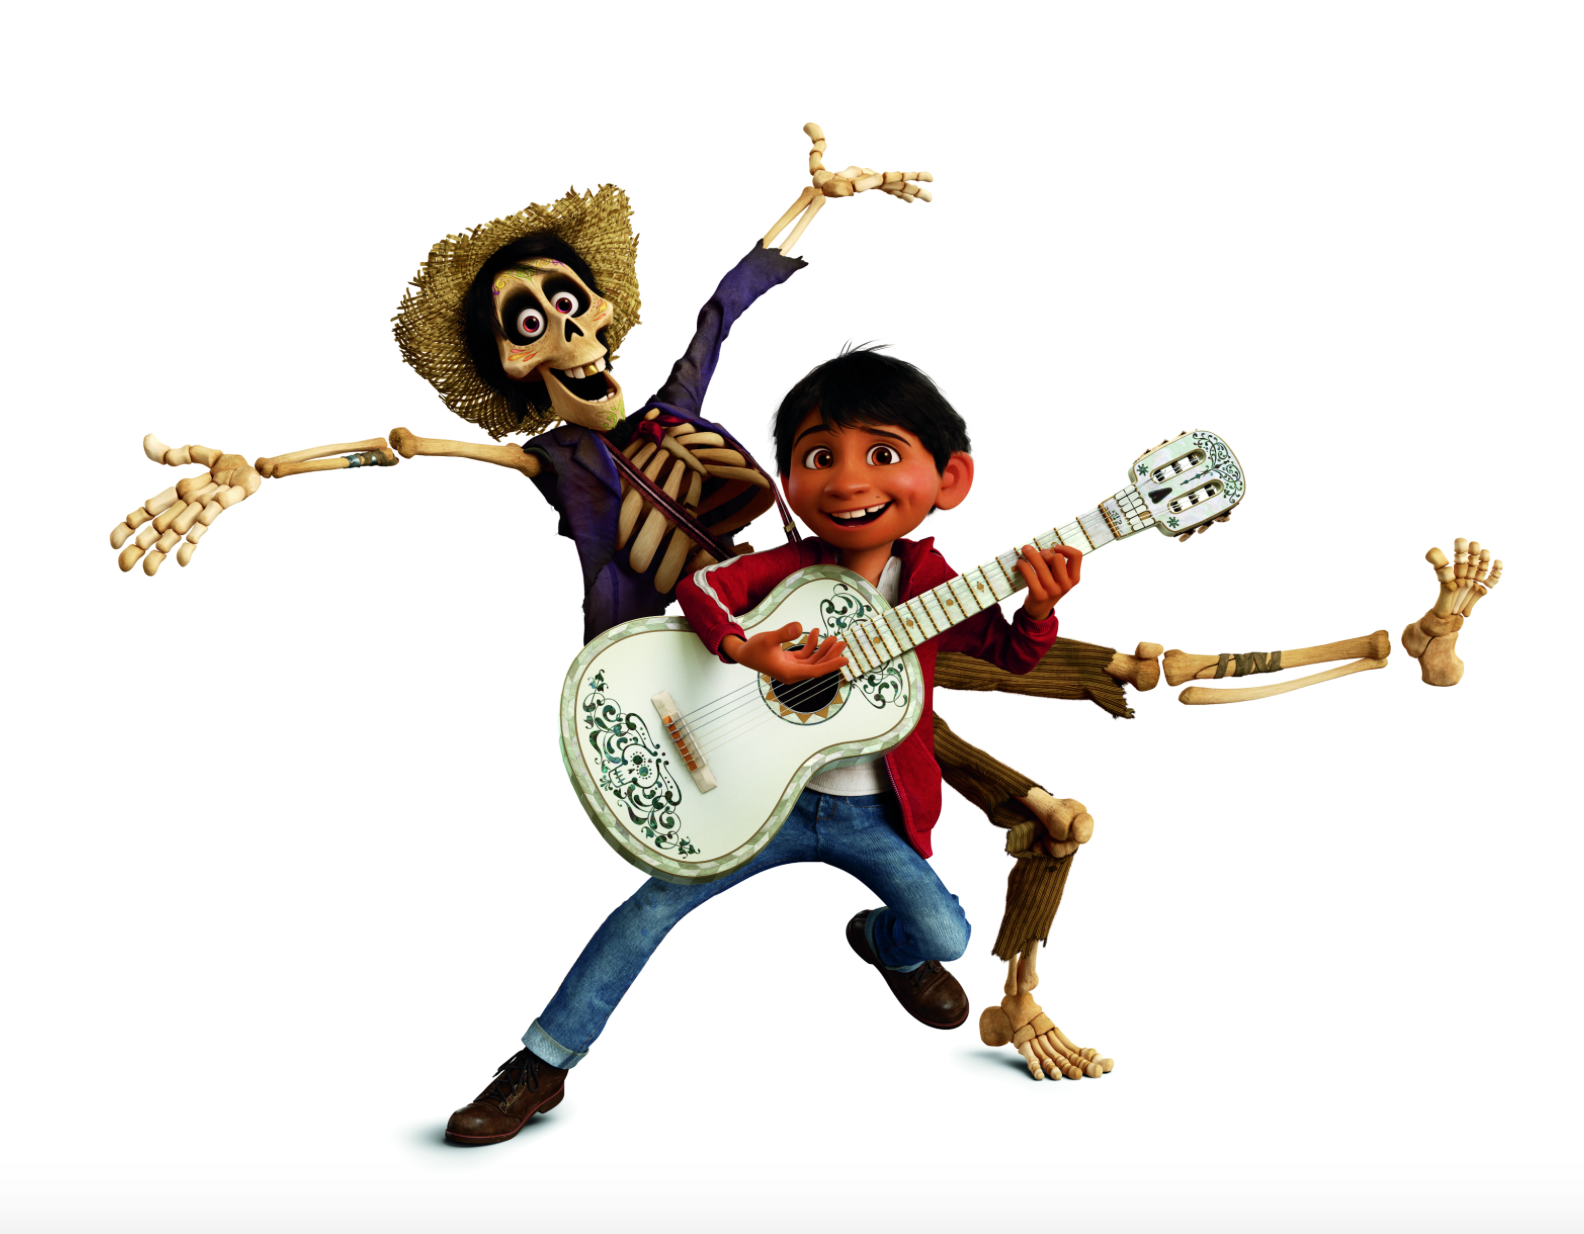 Hector And Miguel Rivera Singing And Dancing With The Guitar From Coco Disney Disney Pixar Disney Emoji Blitz